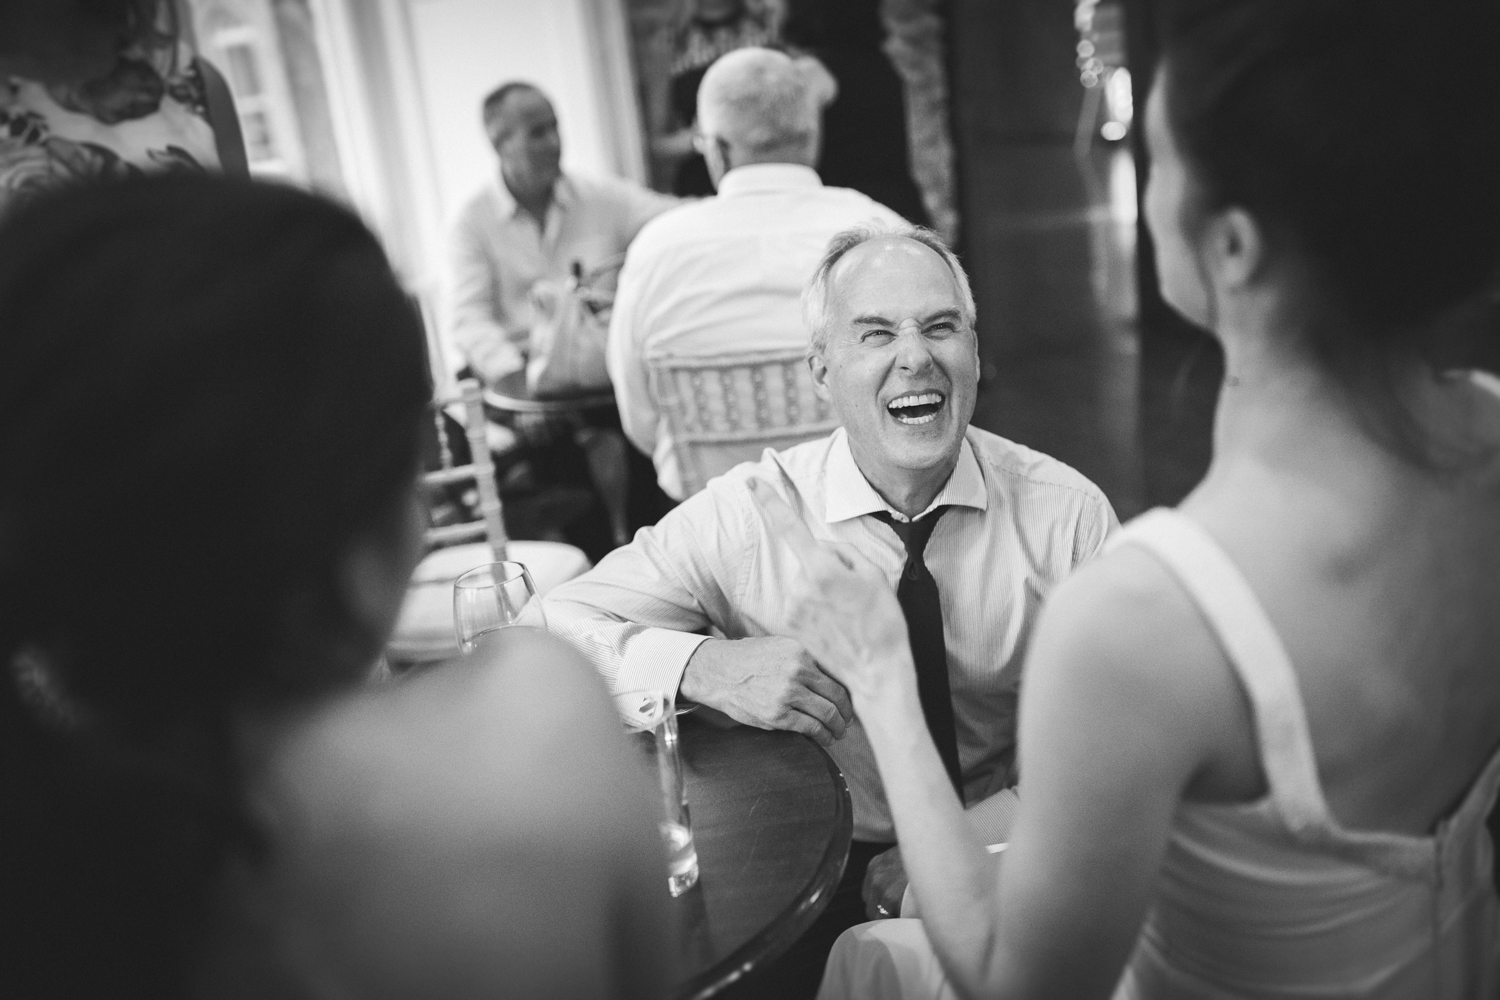 Powerscourt estate wedding-77.jpg